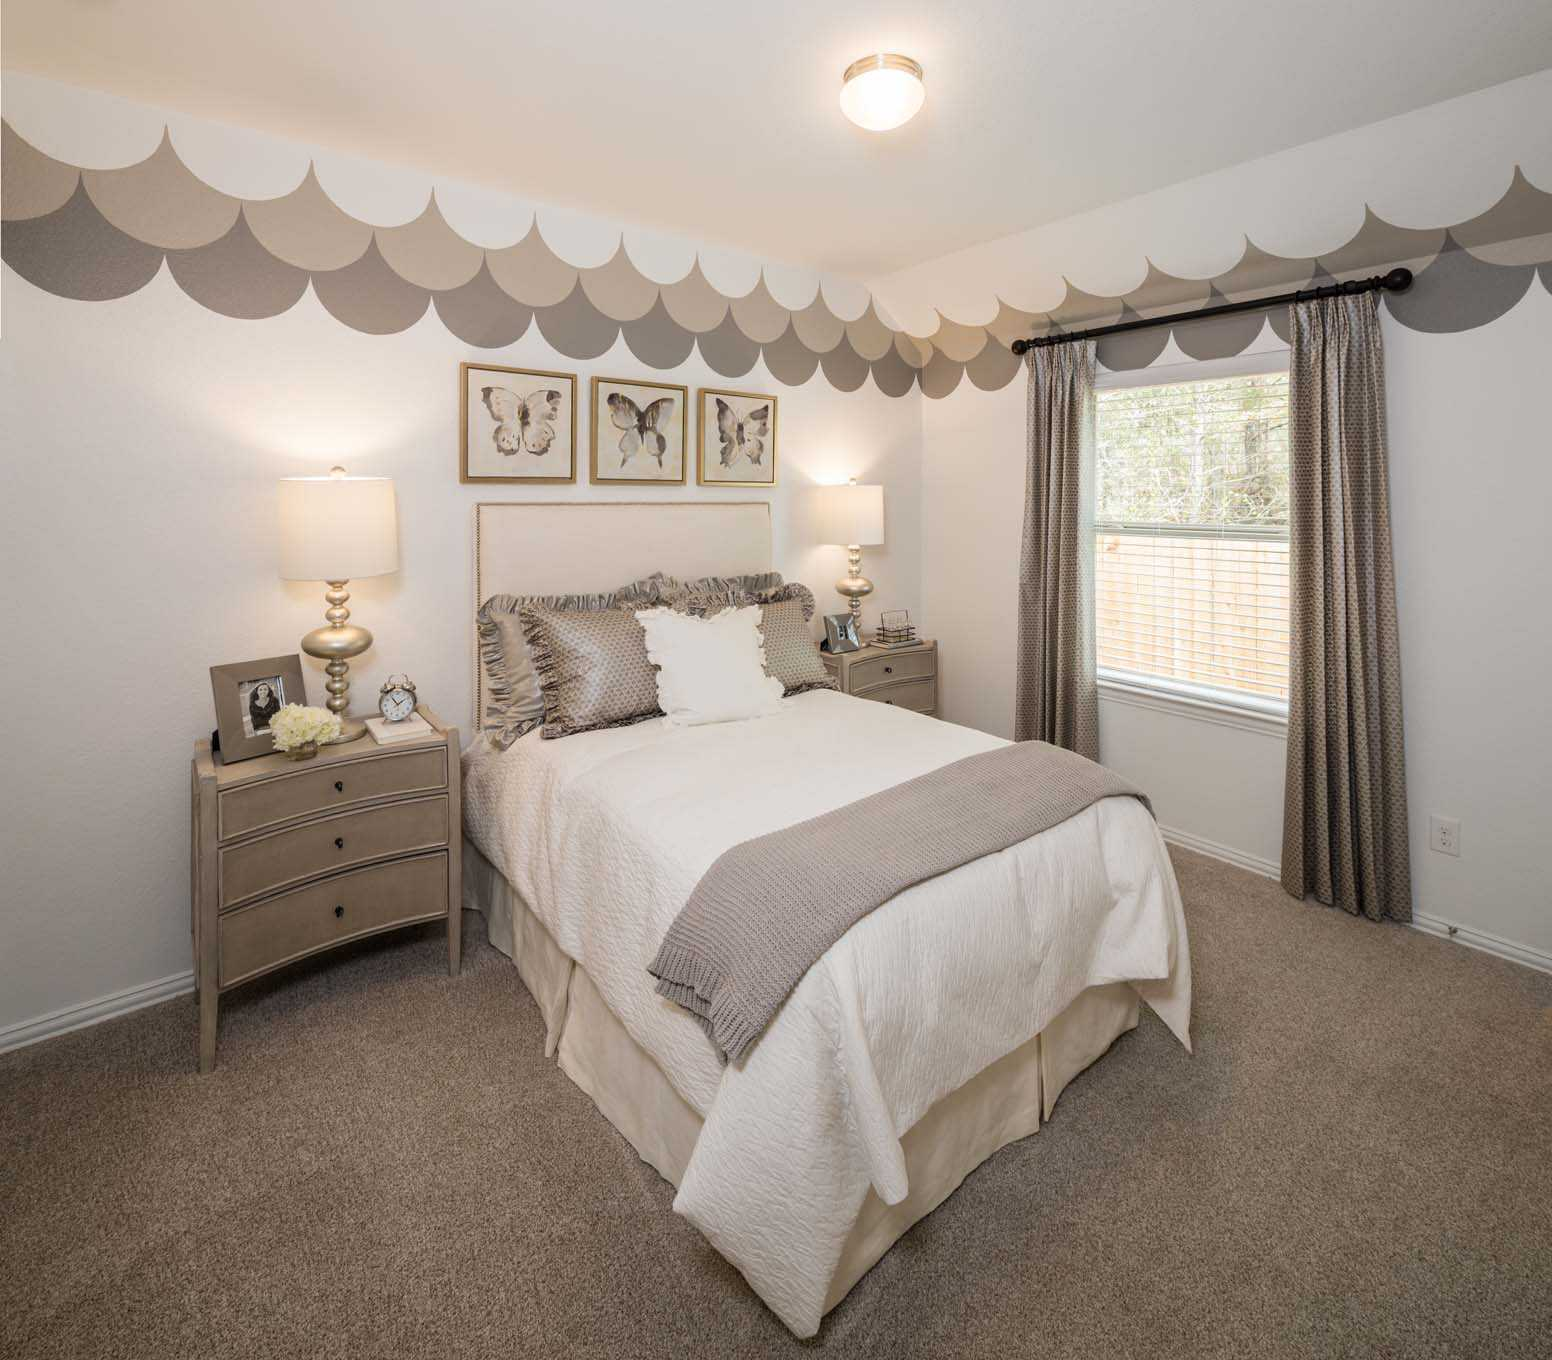 Model Home In Houston Texas, Woodforest